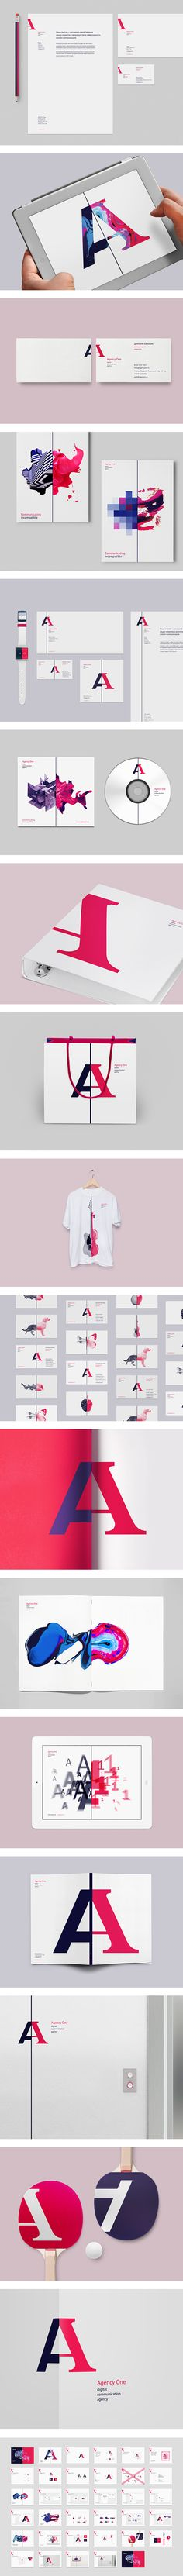 Beautiful! Love the use of negative space and the combination of contrasting imagery to support the brand name and ethos.